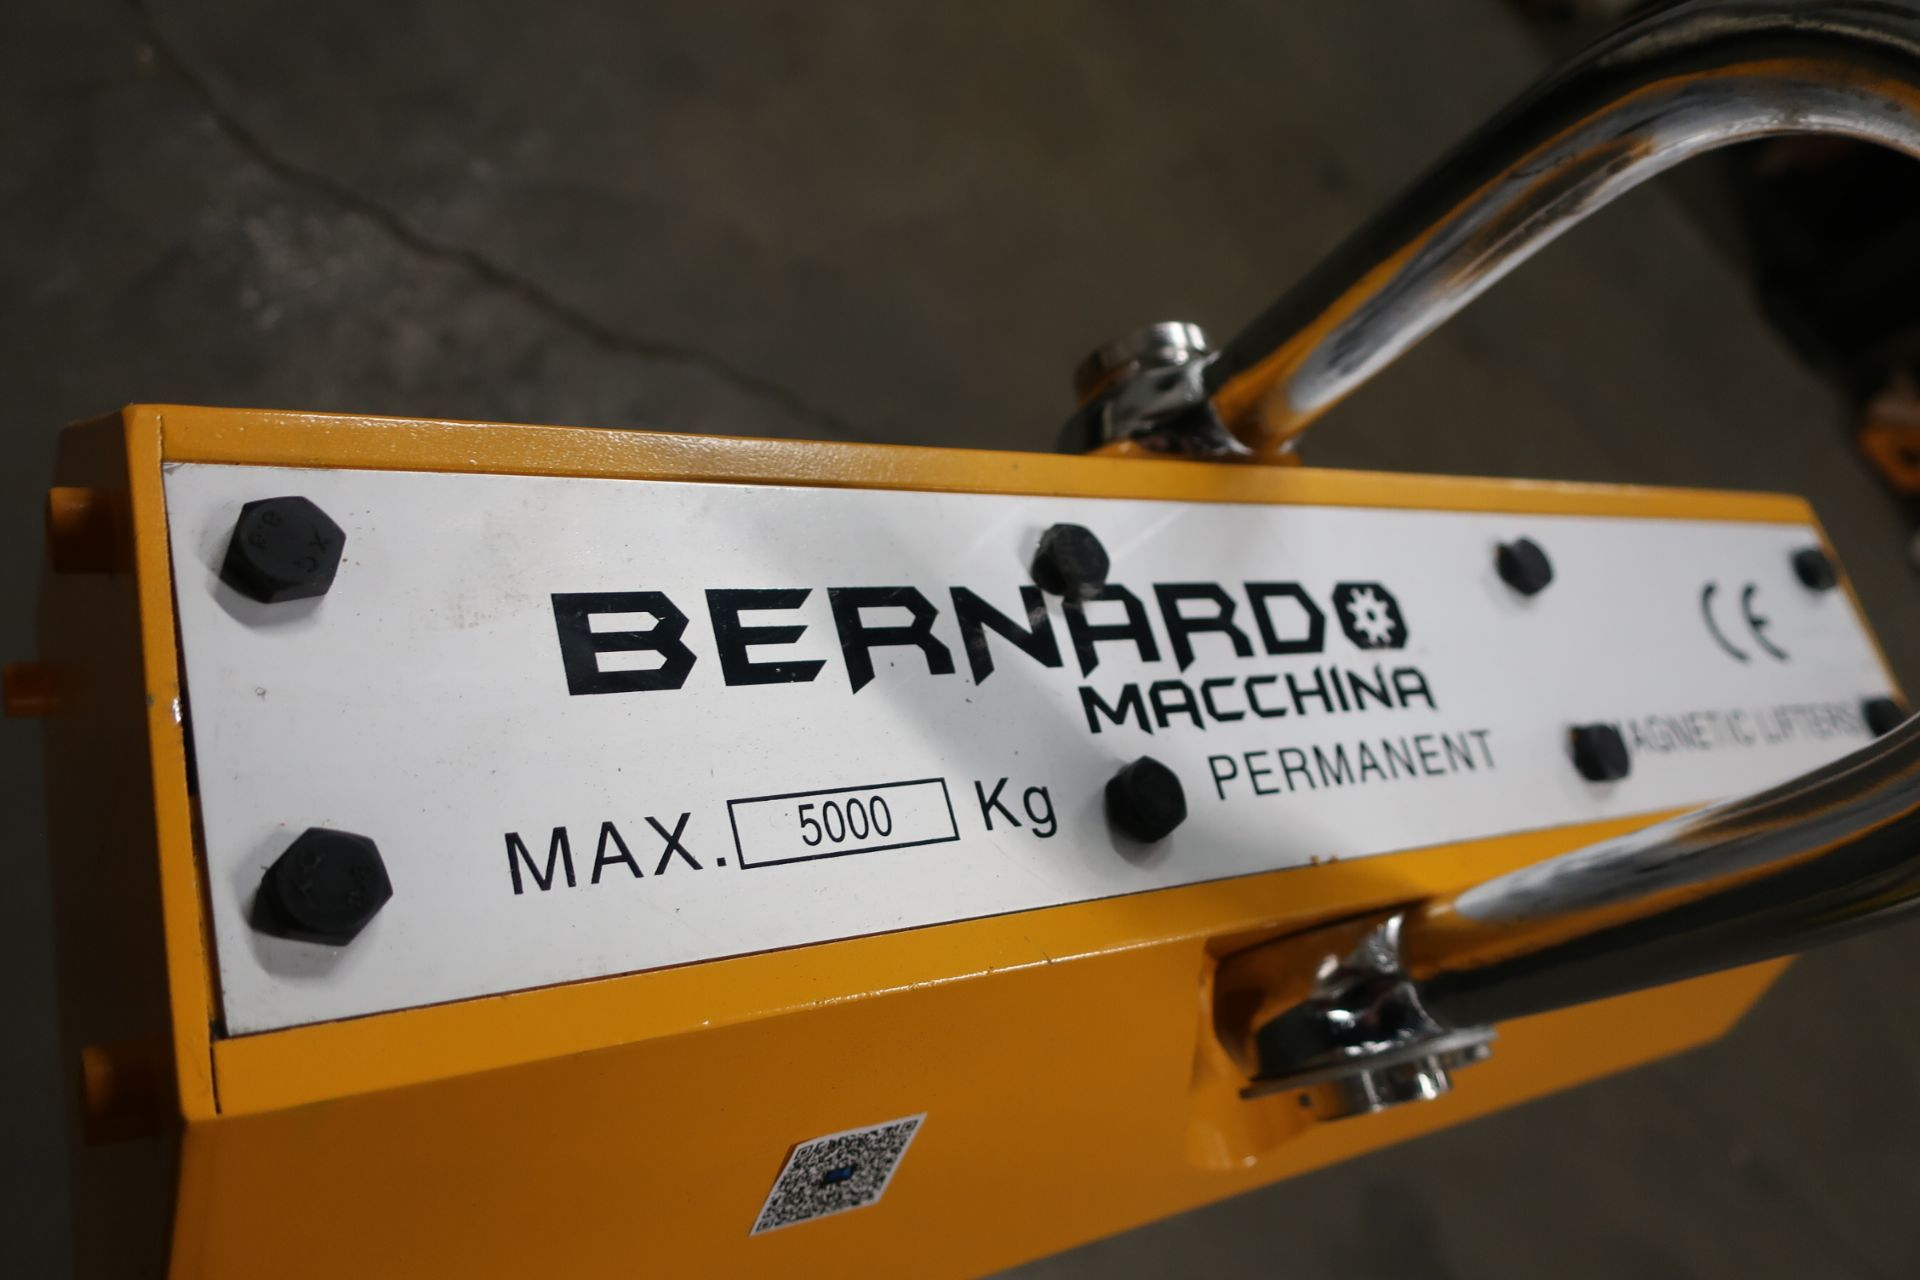 Bernardo 11,000lbs / 5 ton HUGE Heavy Duty Lifting Magnet - for plate and pipe - MINT UNIT - Image 2 of 3